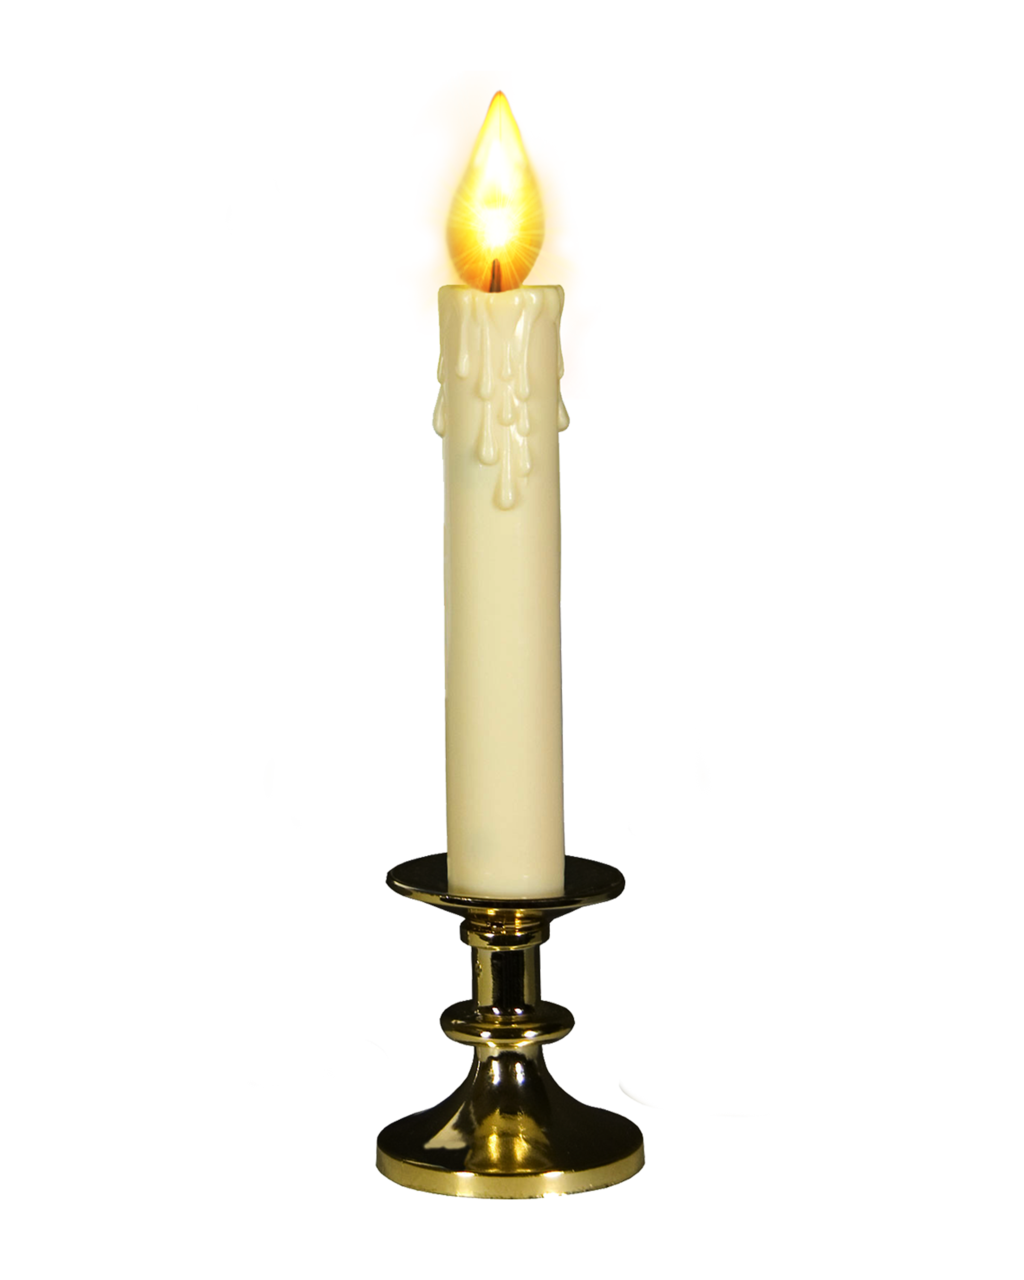 Png Candle By Moonglowlilly Png Candle By Moonglowlilly - Candle HD PNG - Burning Candle PNG HD